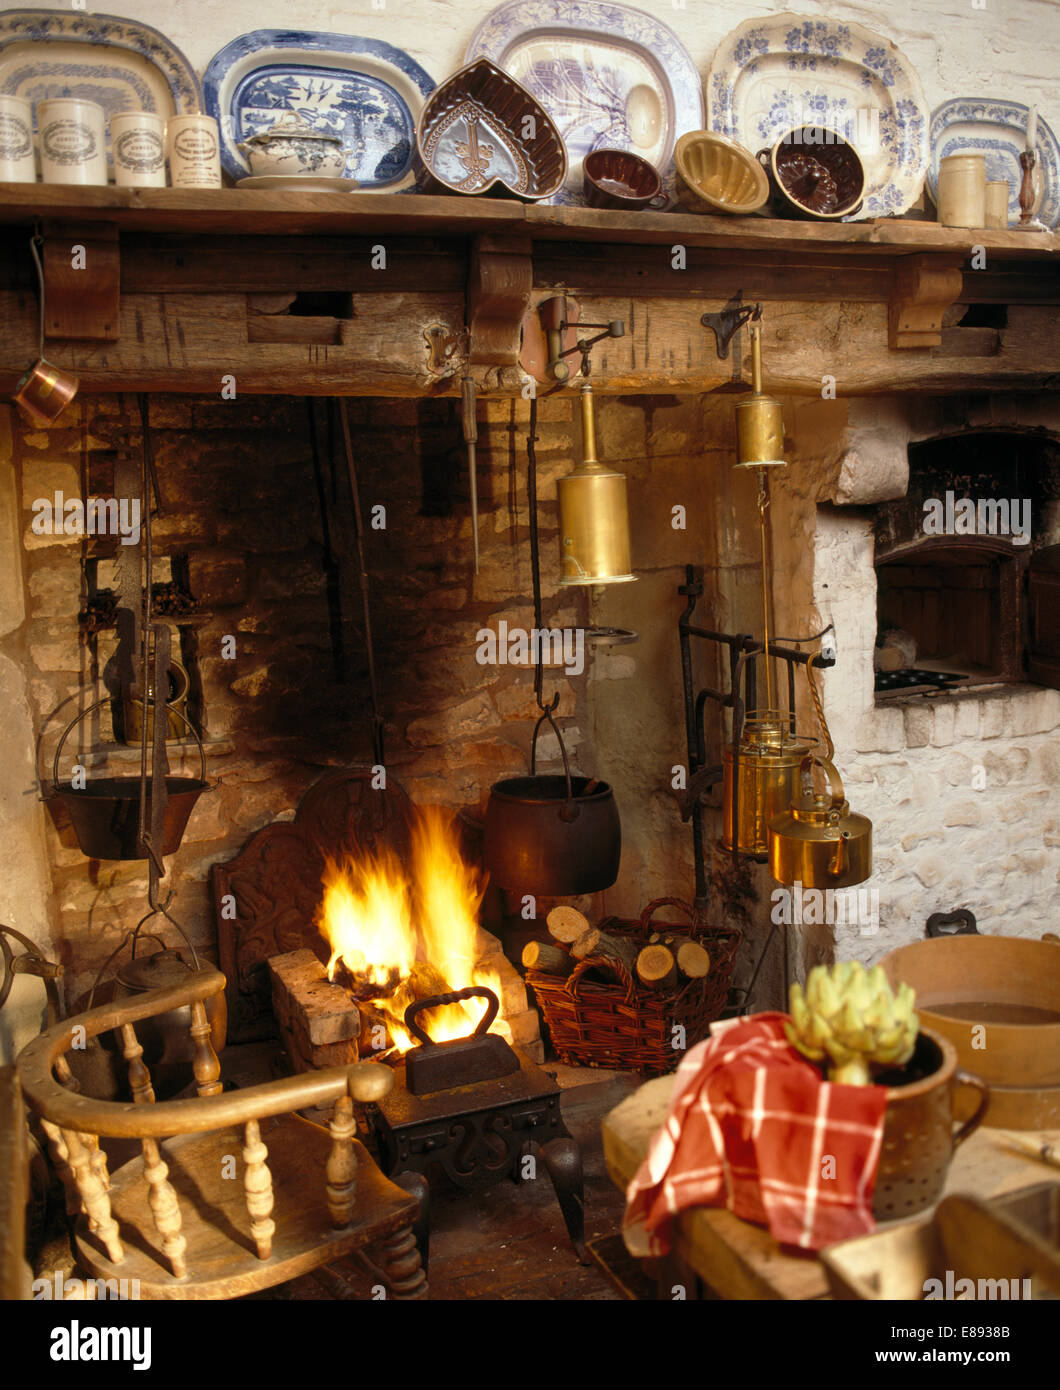 Wooden chair beside inglenook fireplace with lighted fire and row ...